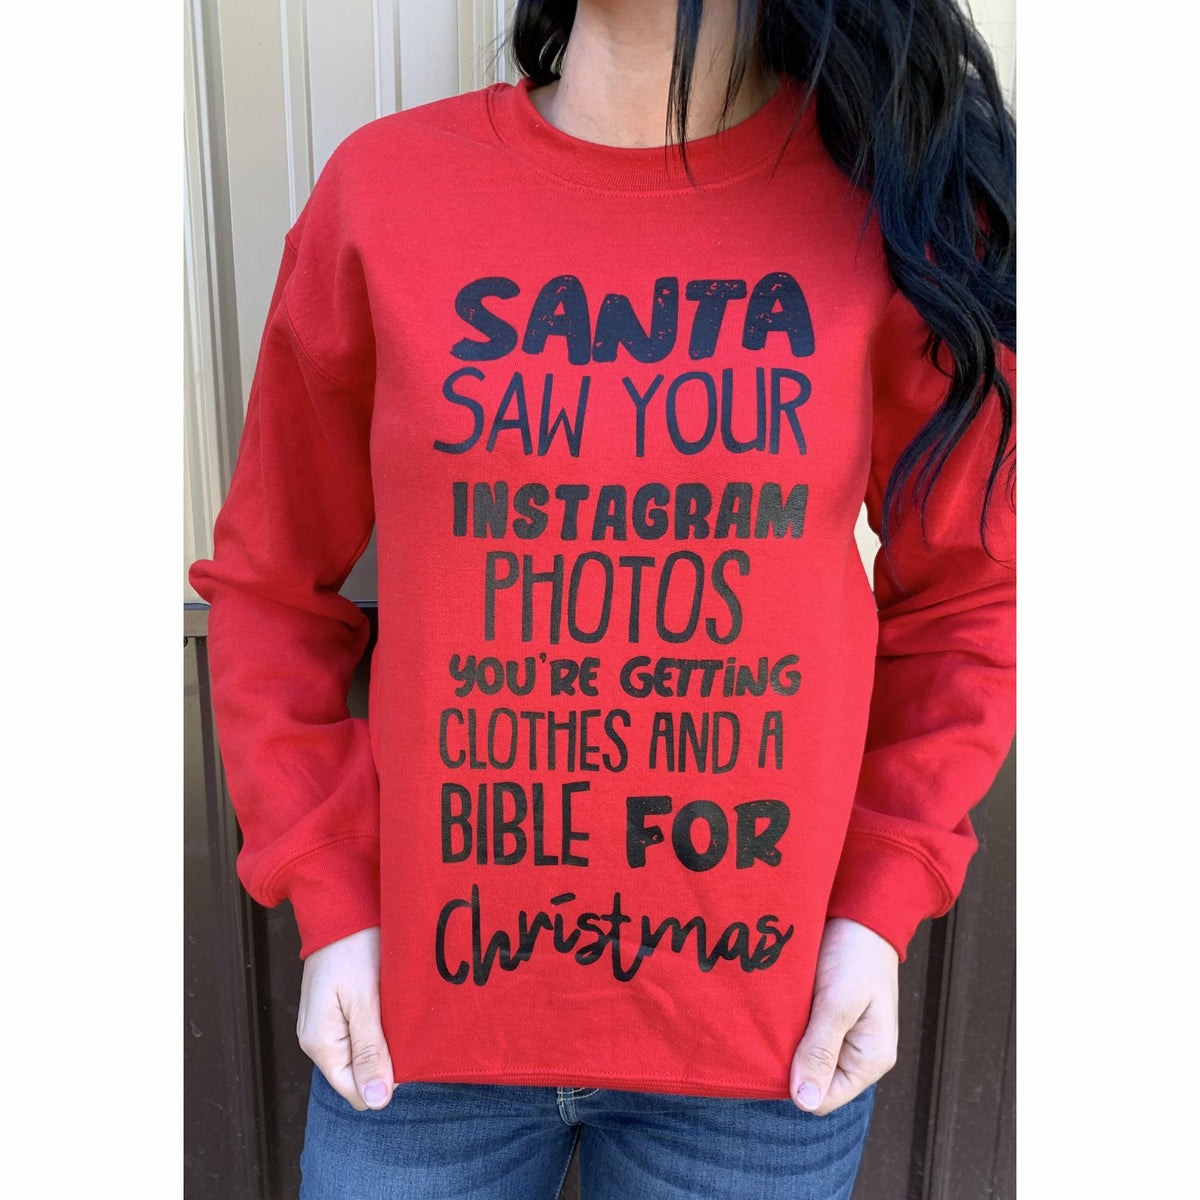 Santa Saw your instagram photos you're getting clothes and a Bible for Christmas tee